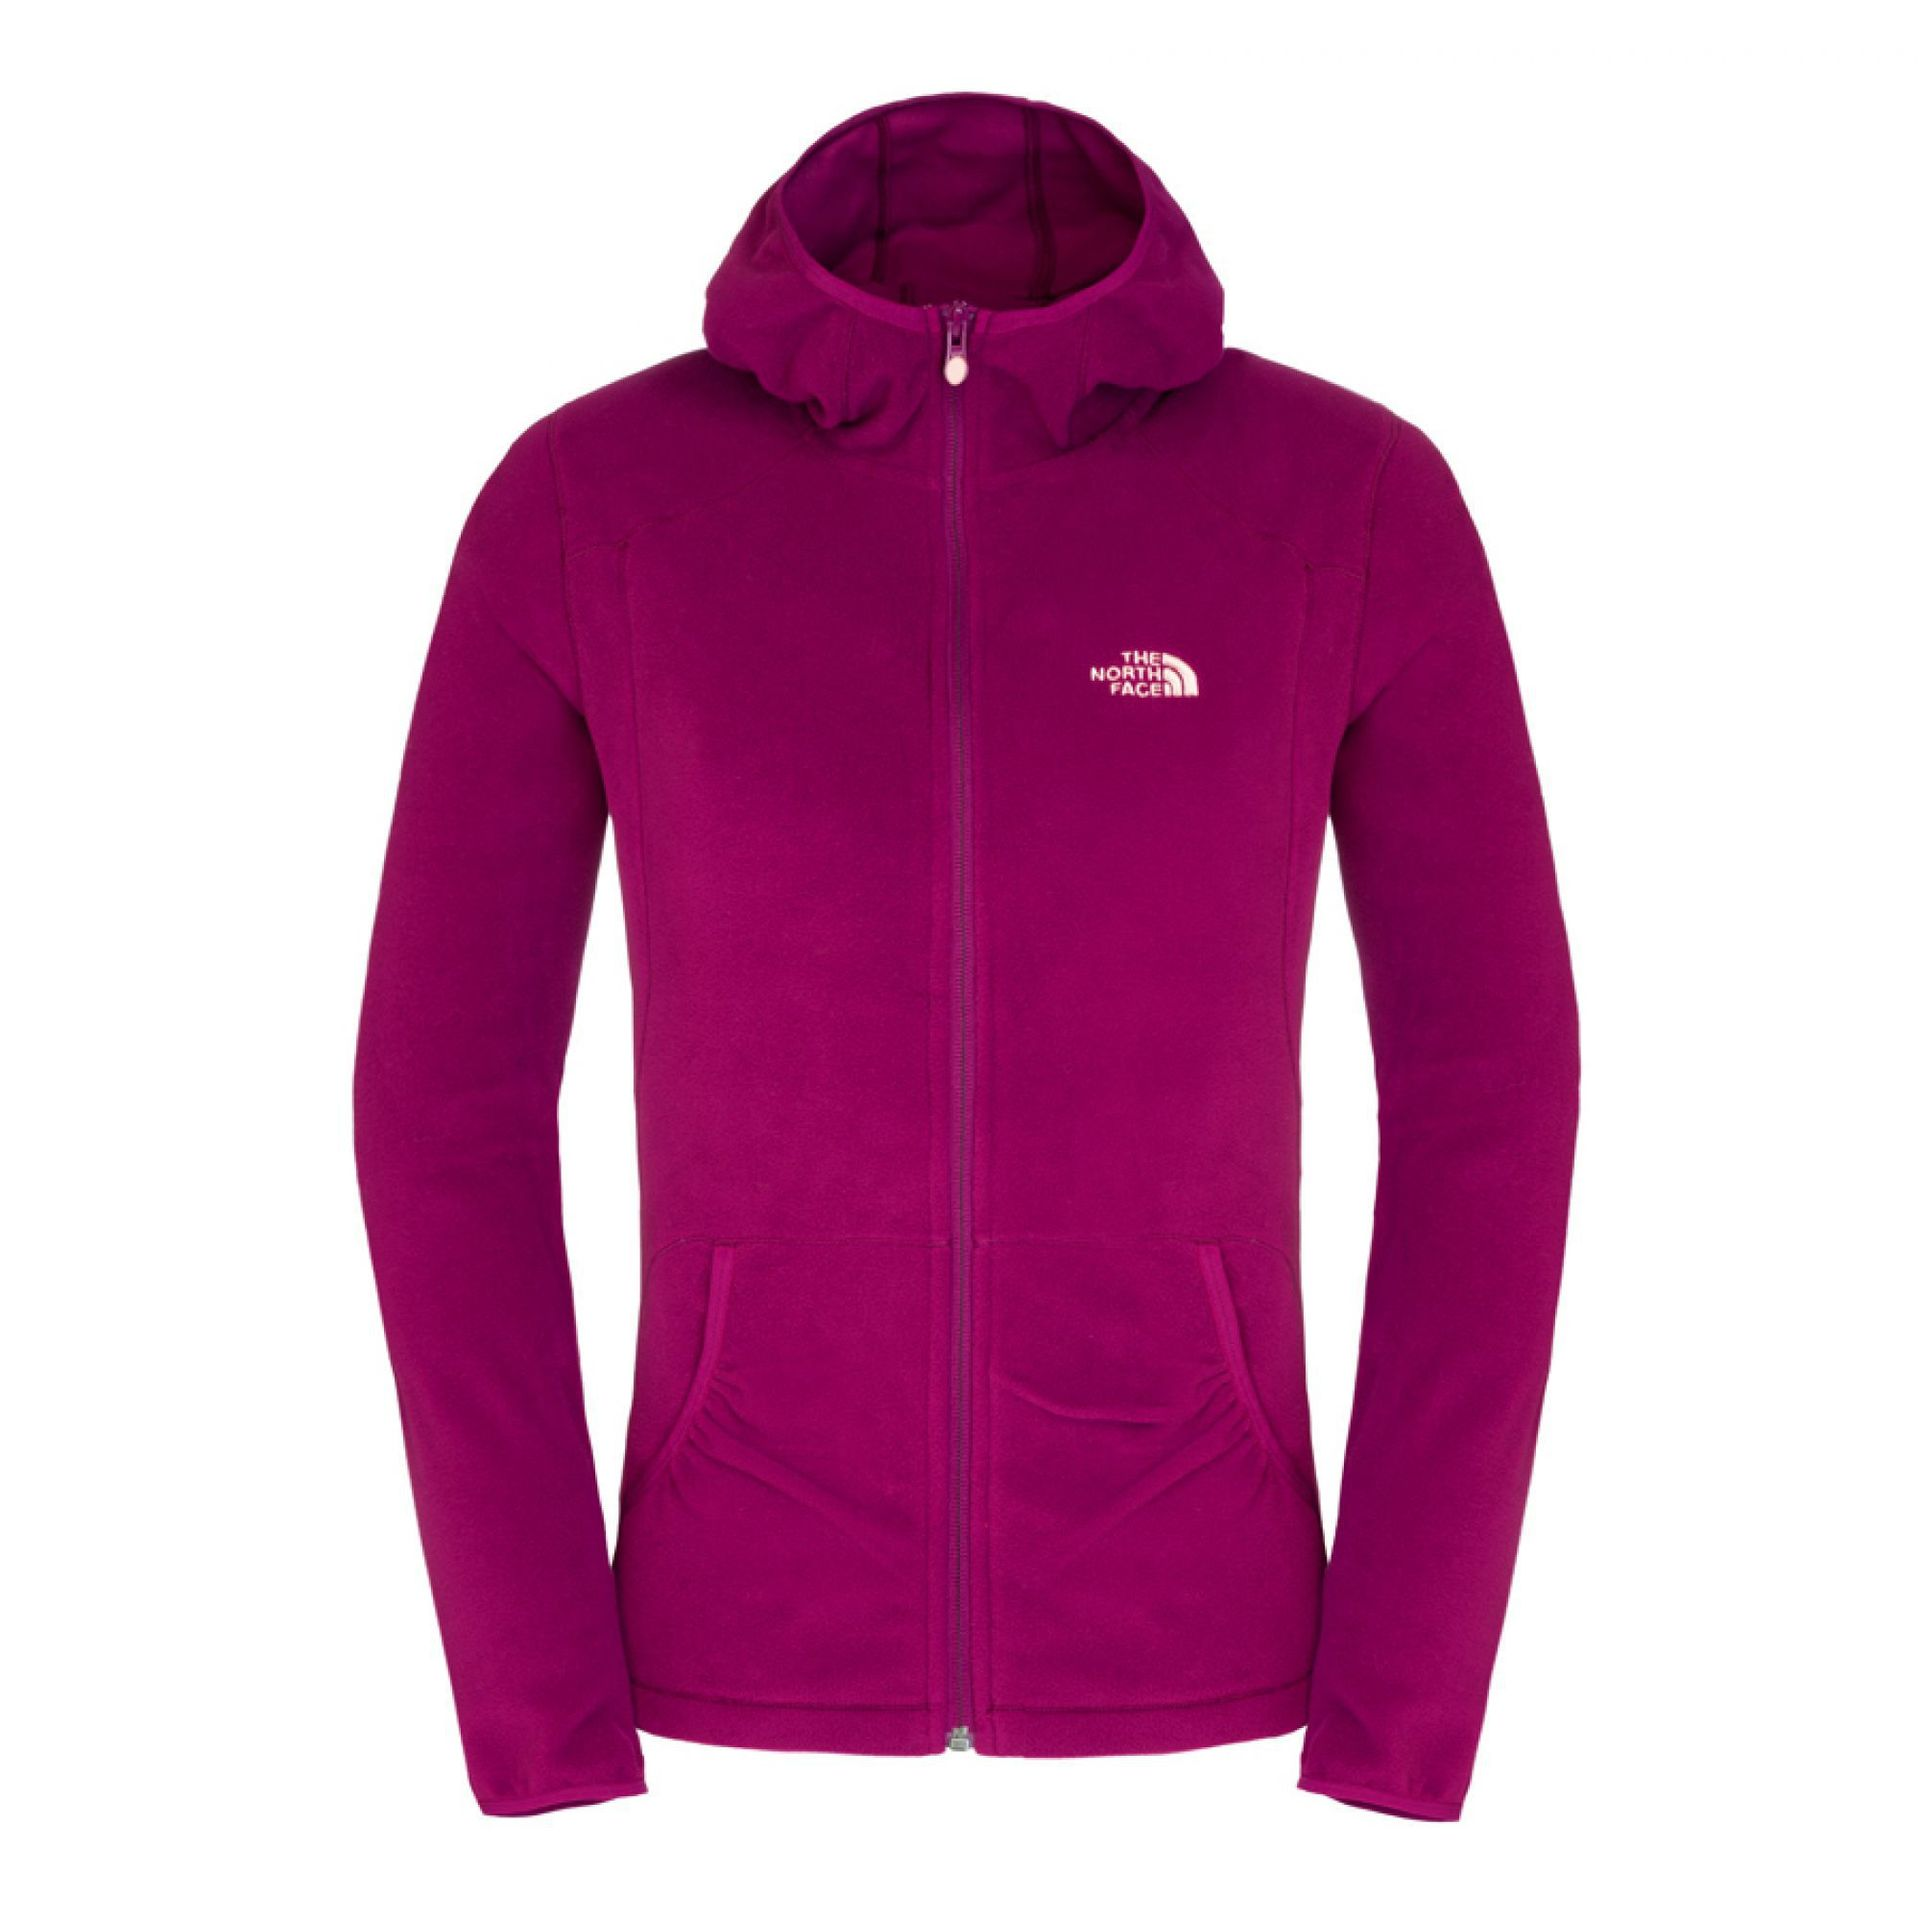 POLAR THE NORTH FACE MASONIC HOODIE FIOLETOWY